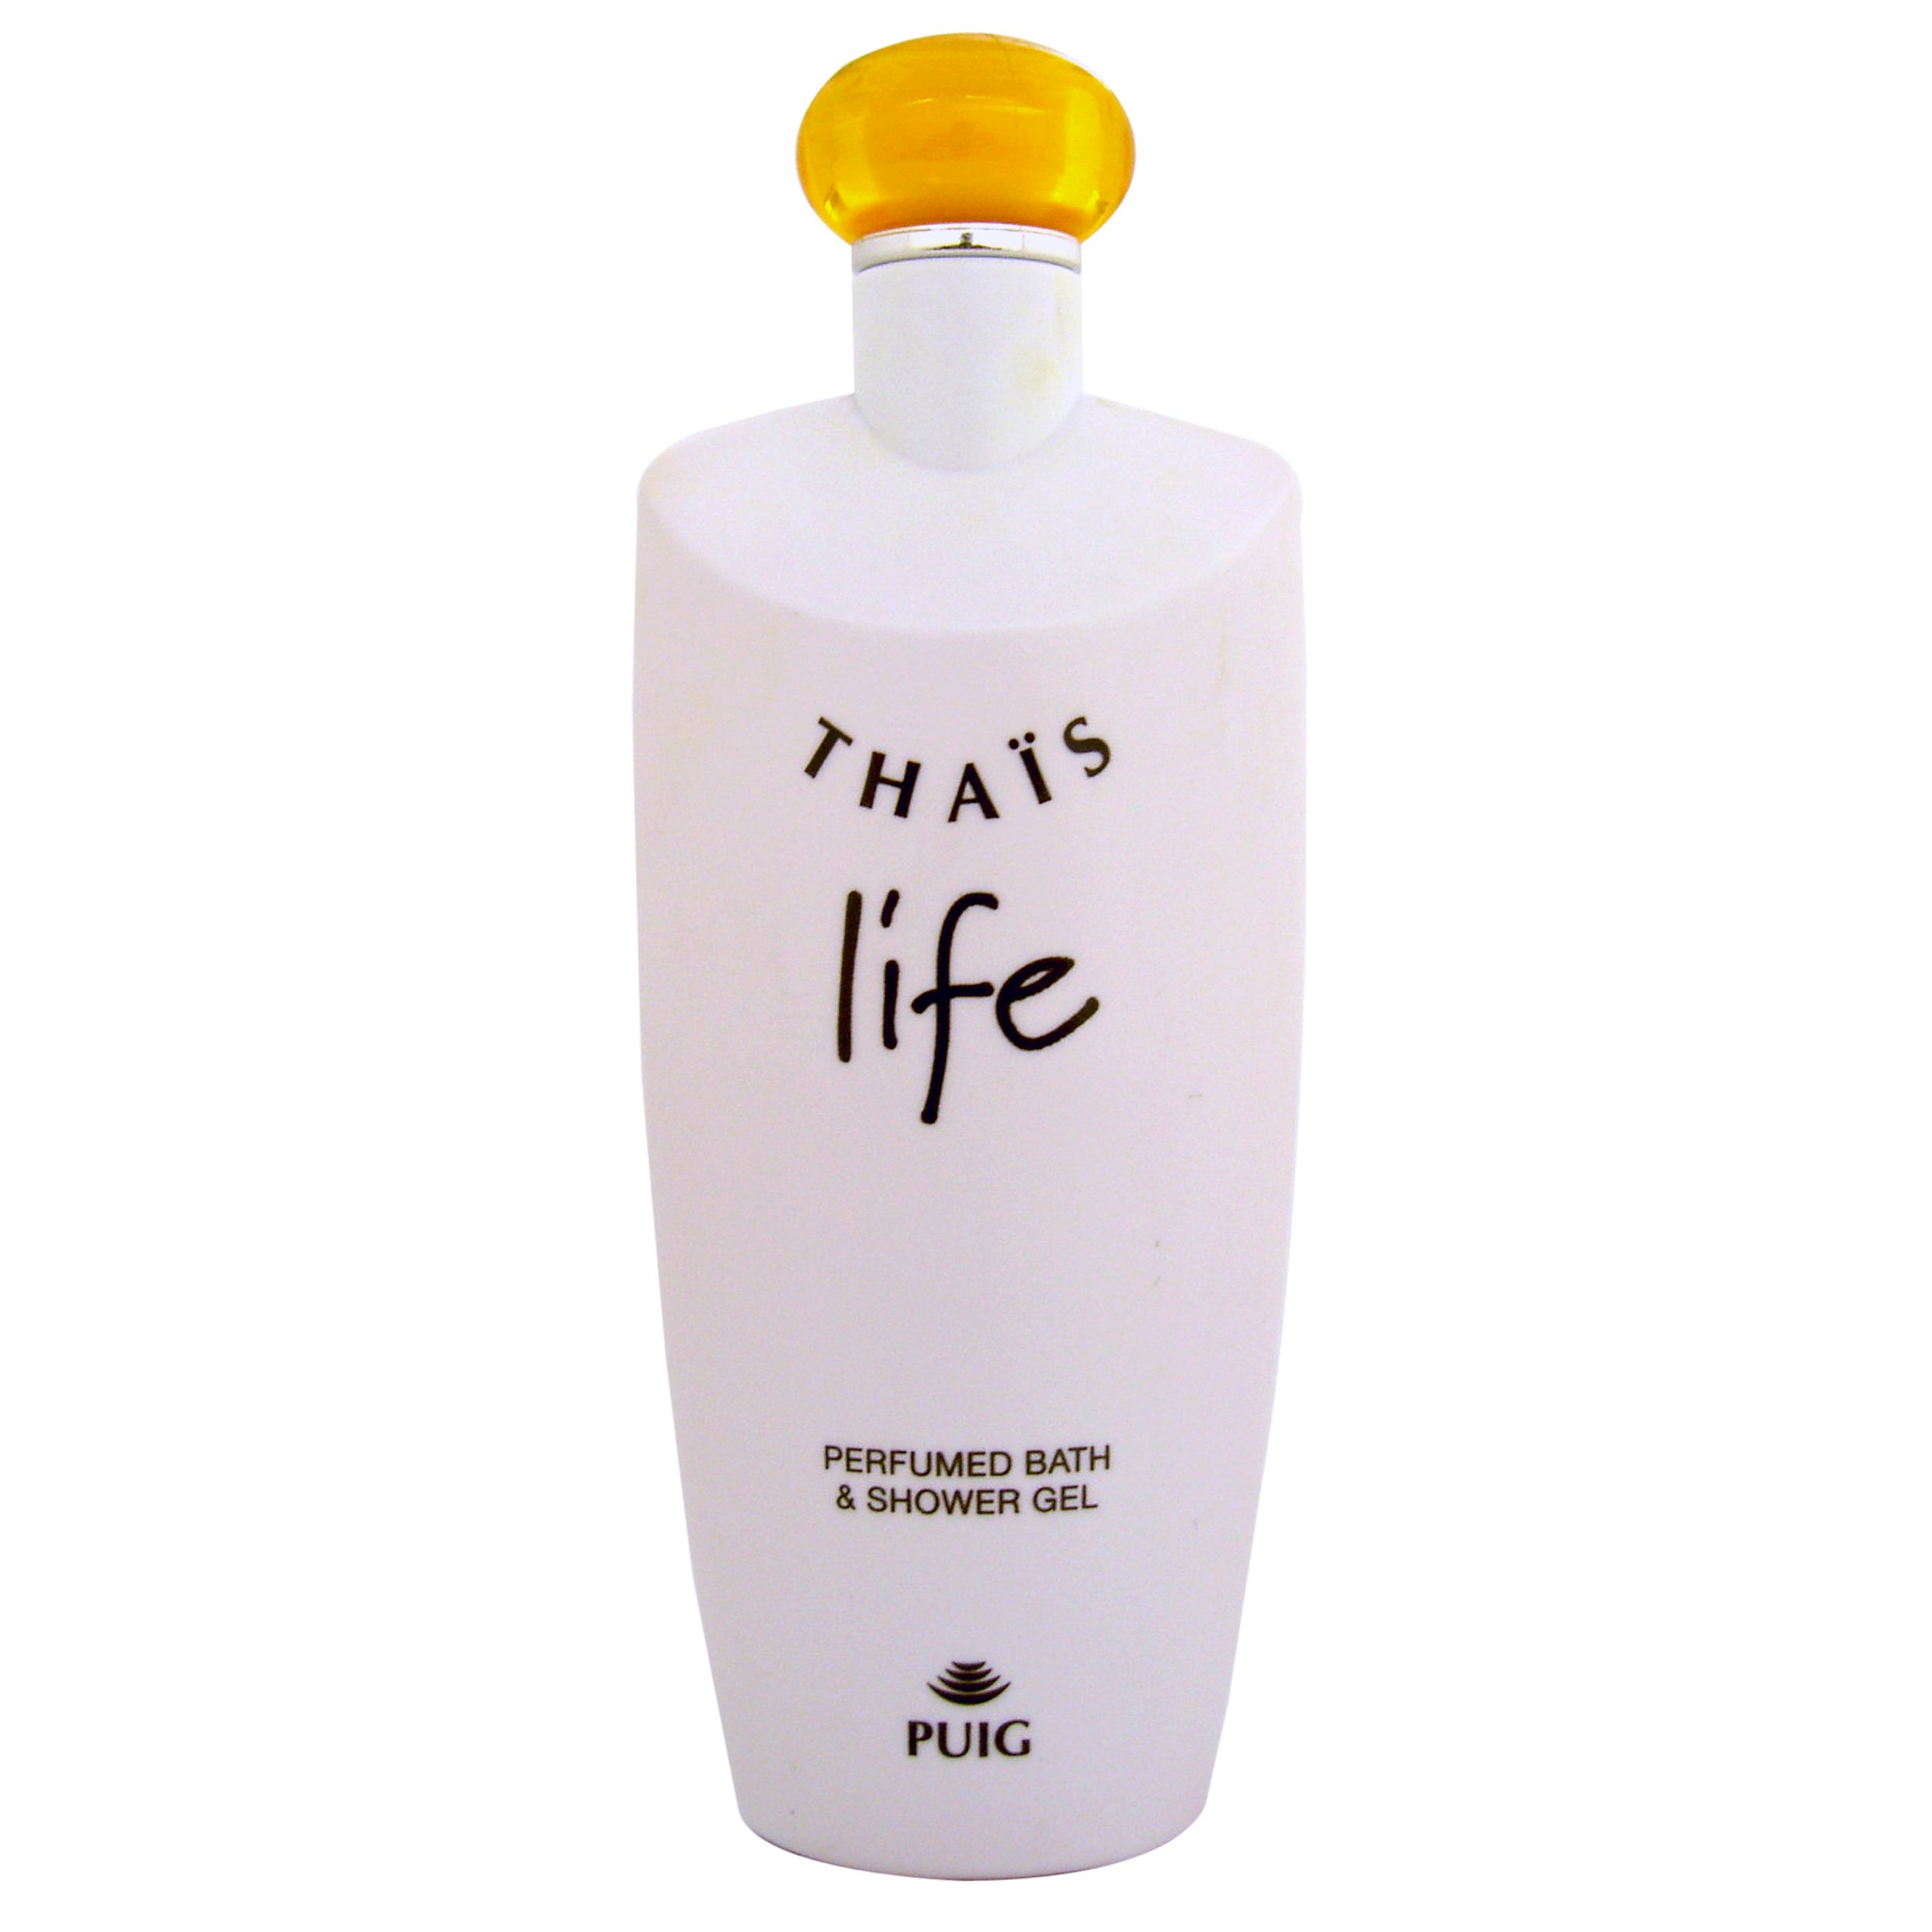 PUIG Thais Life Bath & Shower Gel 200ml